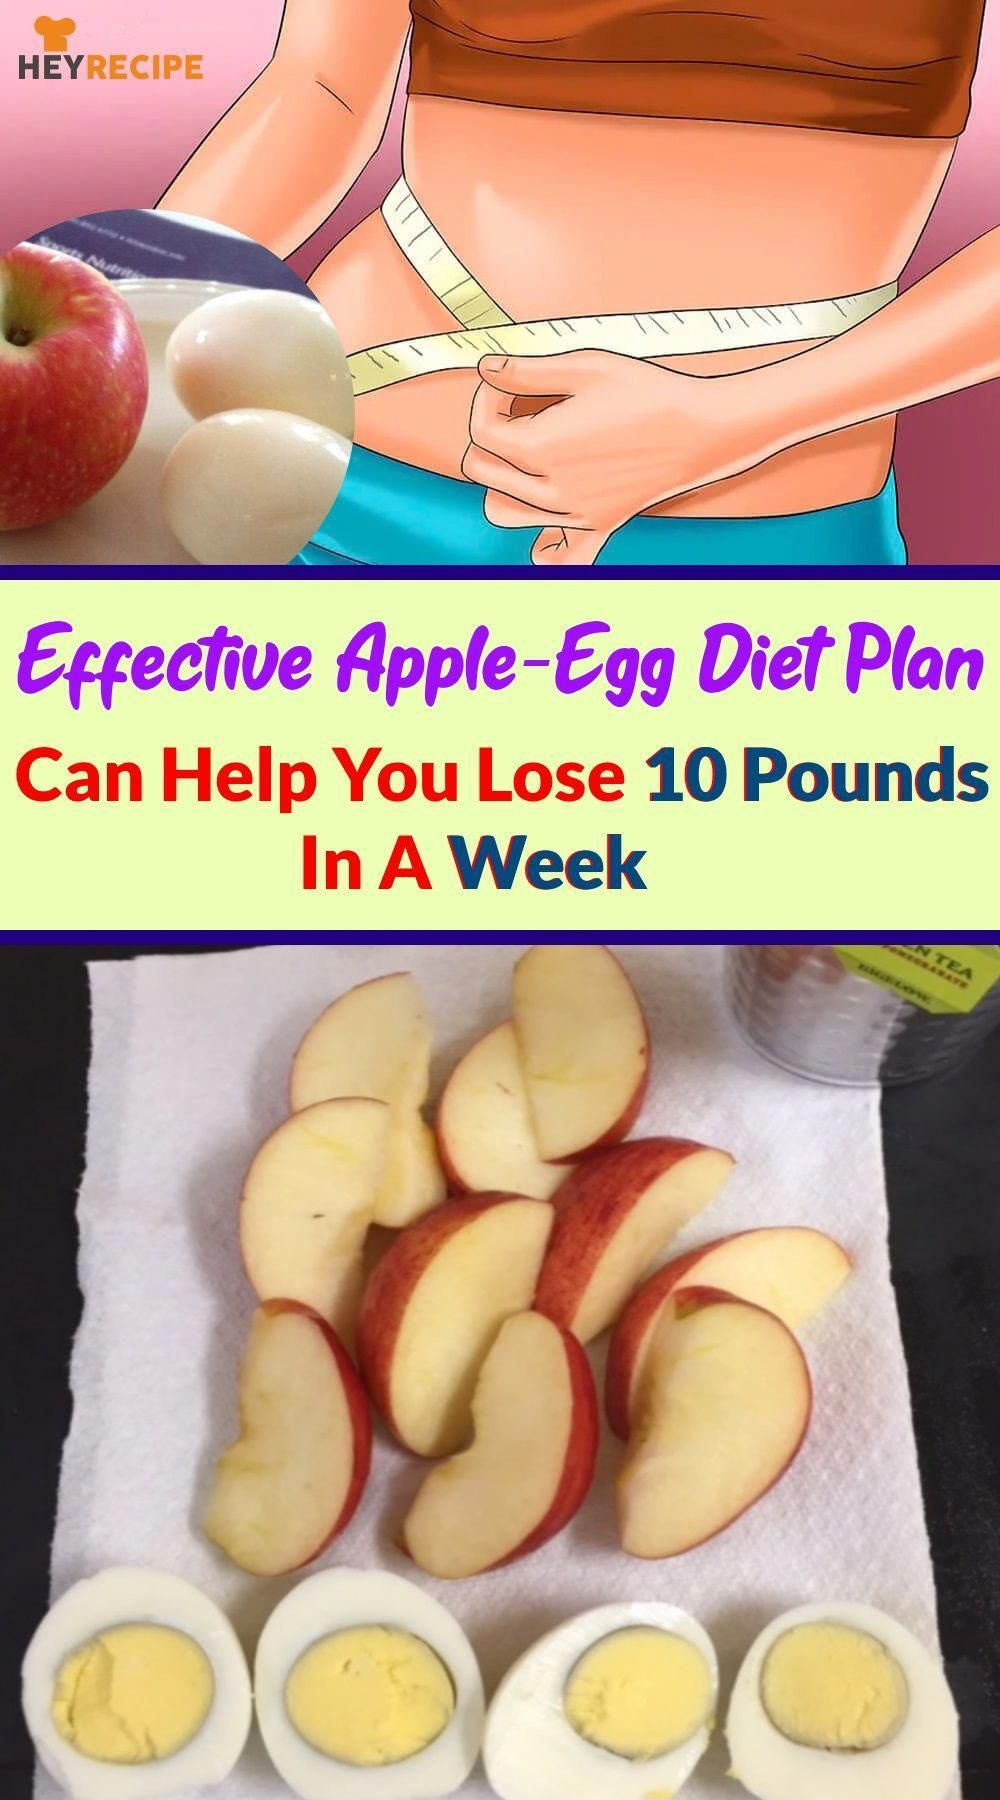 Easy methods to Lose weight With This Boiled Egg Diet plan Plan #EggGrapefruitDietMenu #boiledeggnutrition Easy methods to Lose weight With This Boiled Egg Diet plan Plan #EggGrapefruitDietMenu #boiledeggnutrition